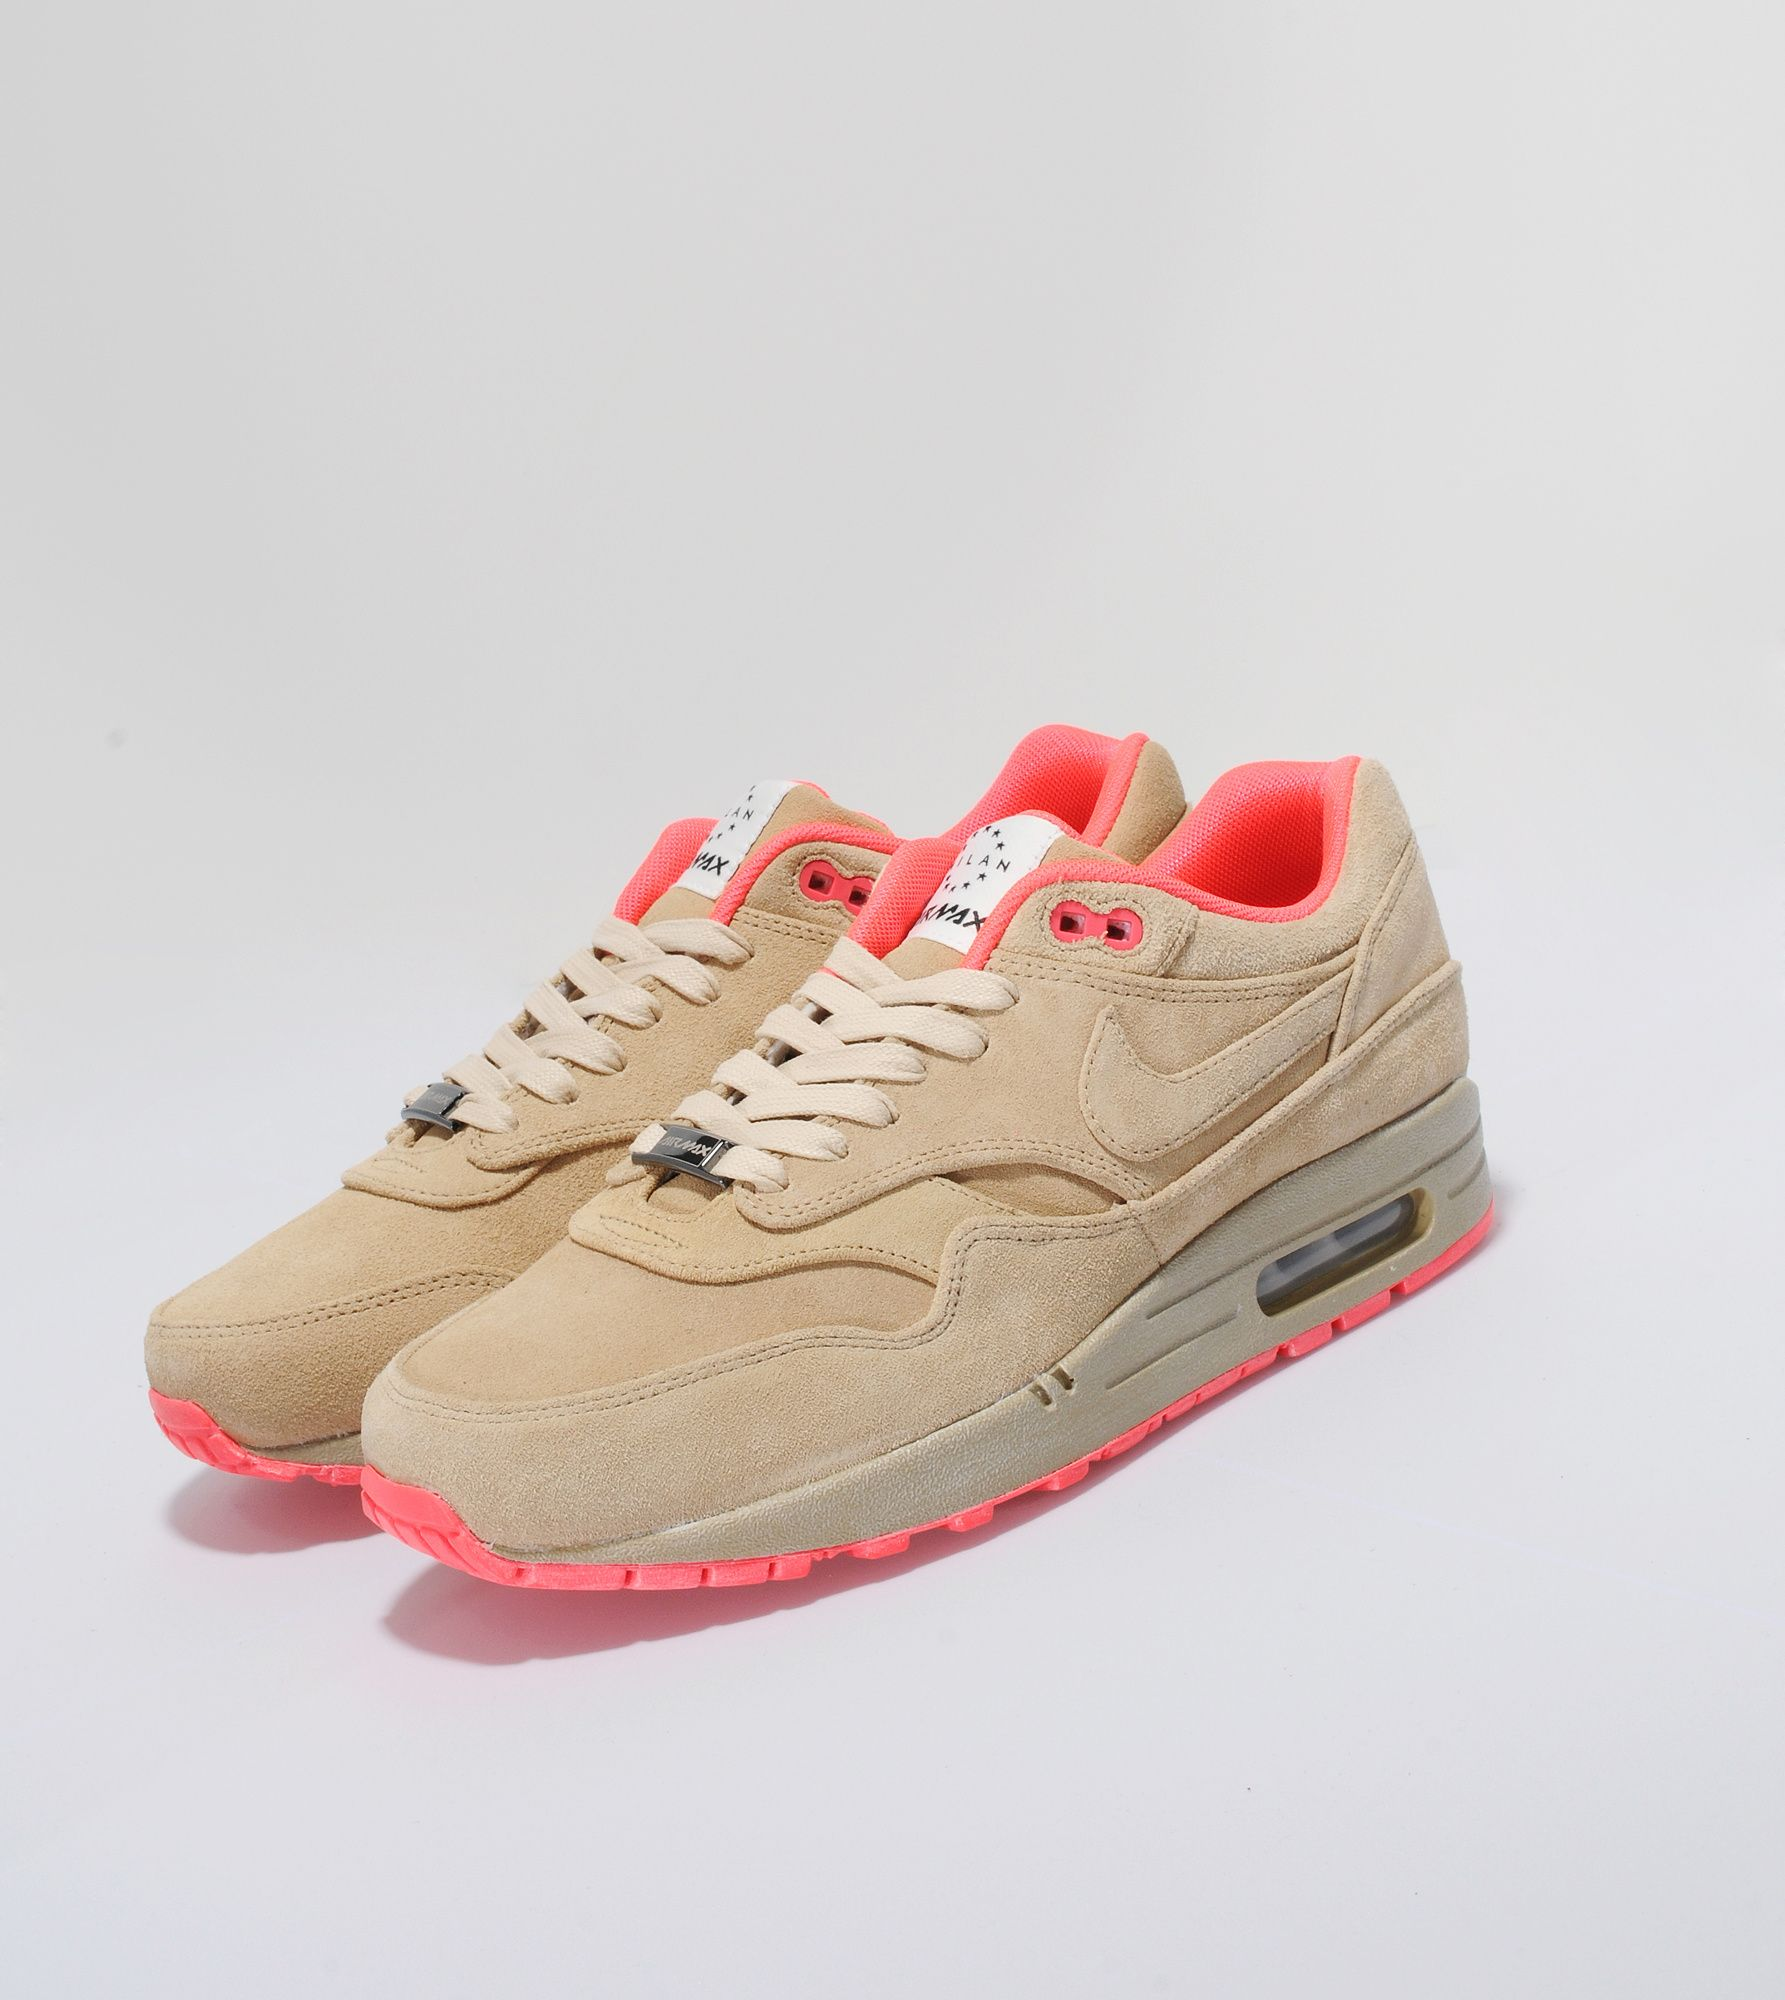 canada air max 1 hometurf milan for sale bea95 3dc27